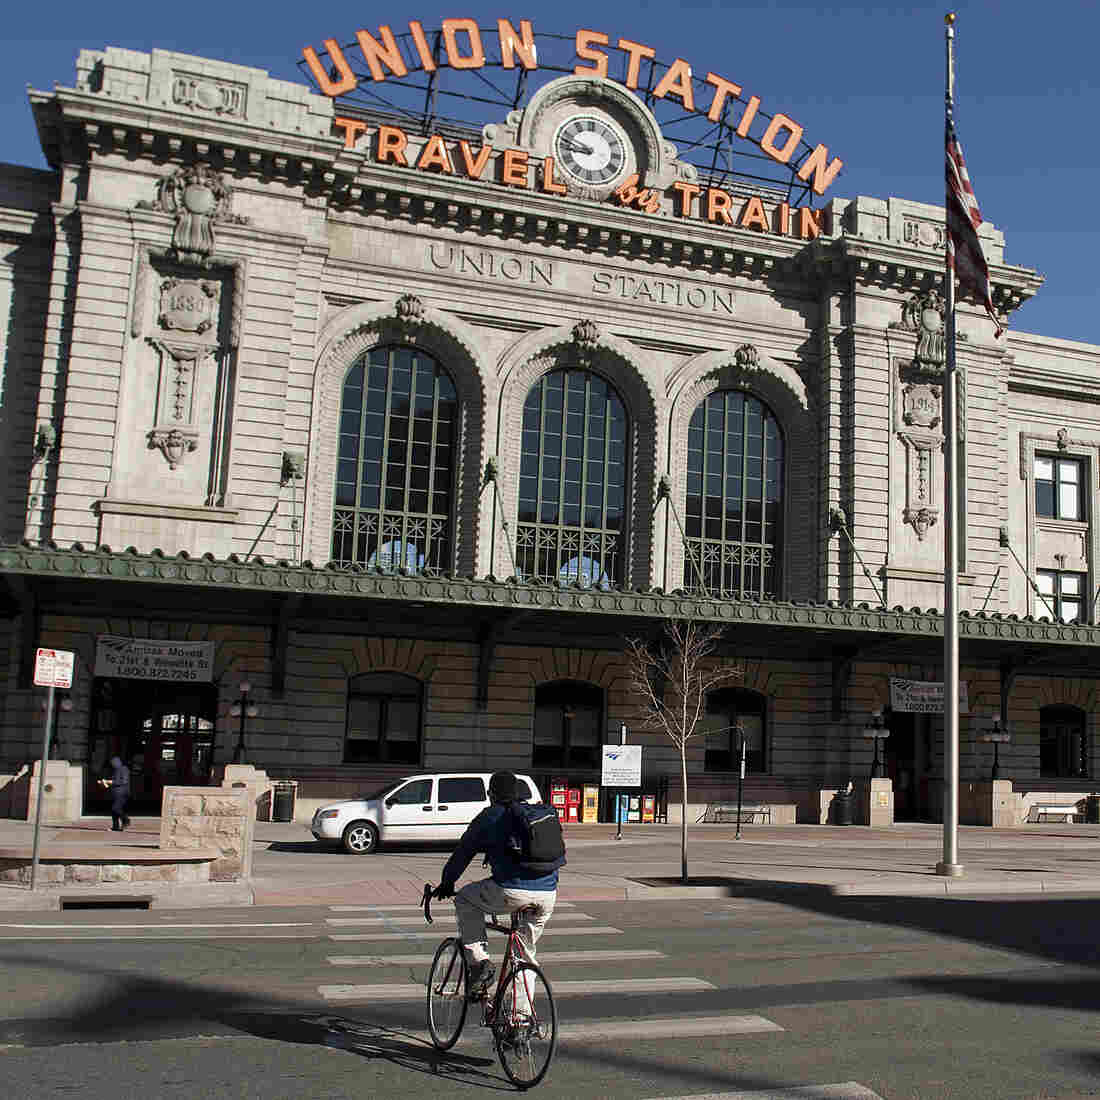 Denver's Union Station, which was remodeled to include restaurants, stores and a hotel, reopened last month.